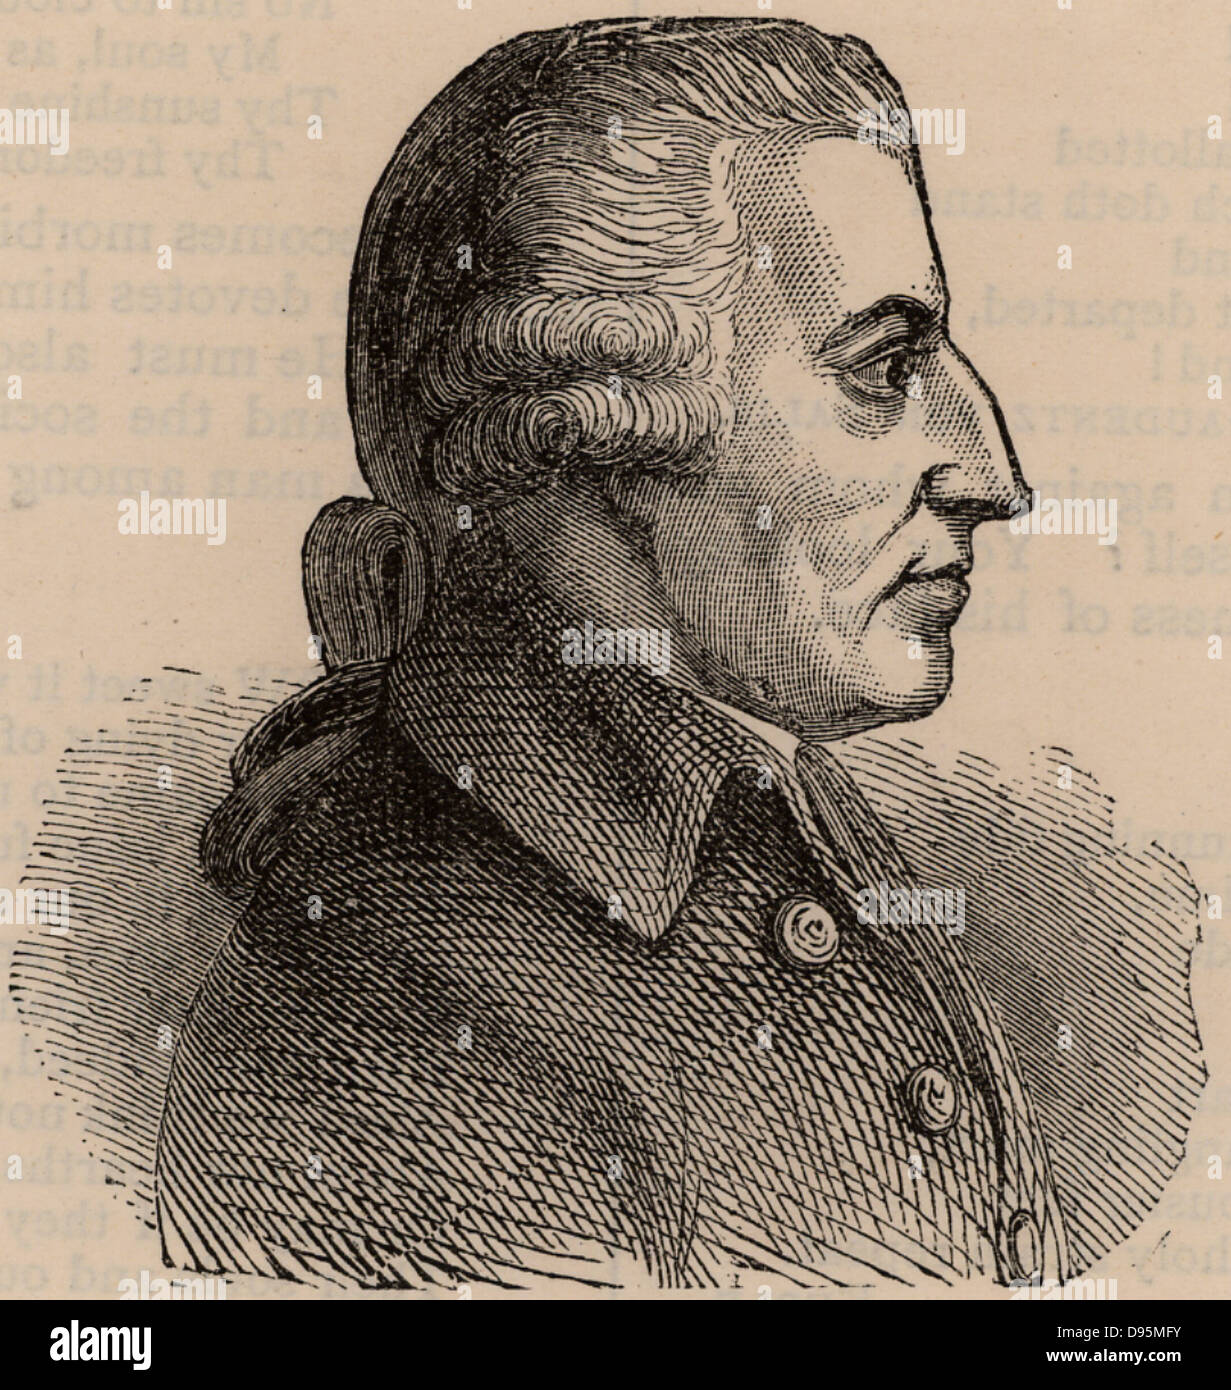 John Howard (1726-1790) English prison reformer.  Howard League for Penal Reform named for him. Woodcut. Stock Photo